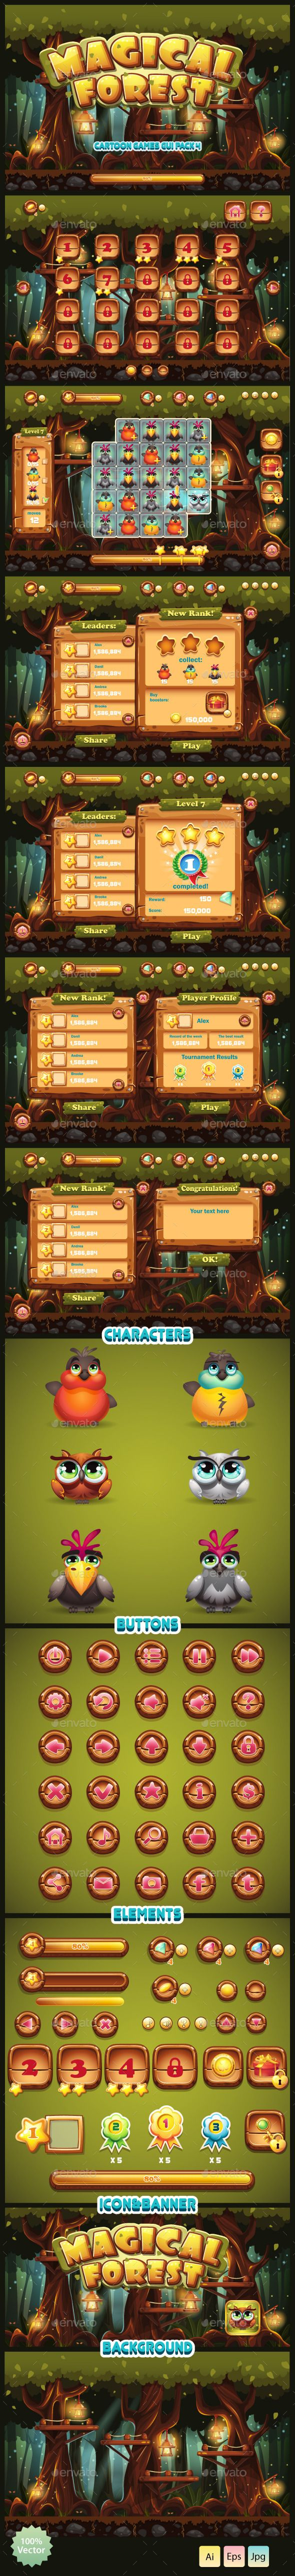 GUI Magical Forest - Game #Kits #Game #Assets | Download http://graphicriver.net/item/gui-magical-forest/10199651?ref=sinzo